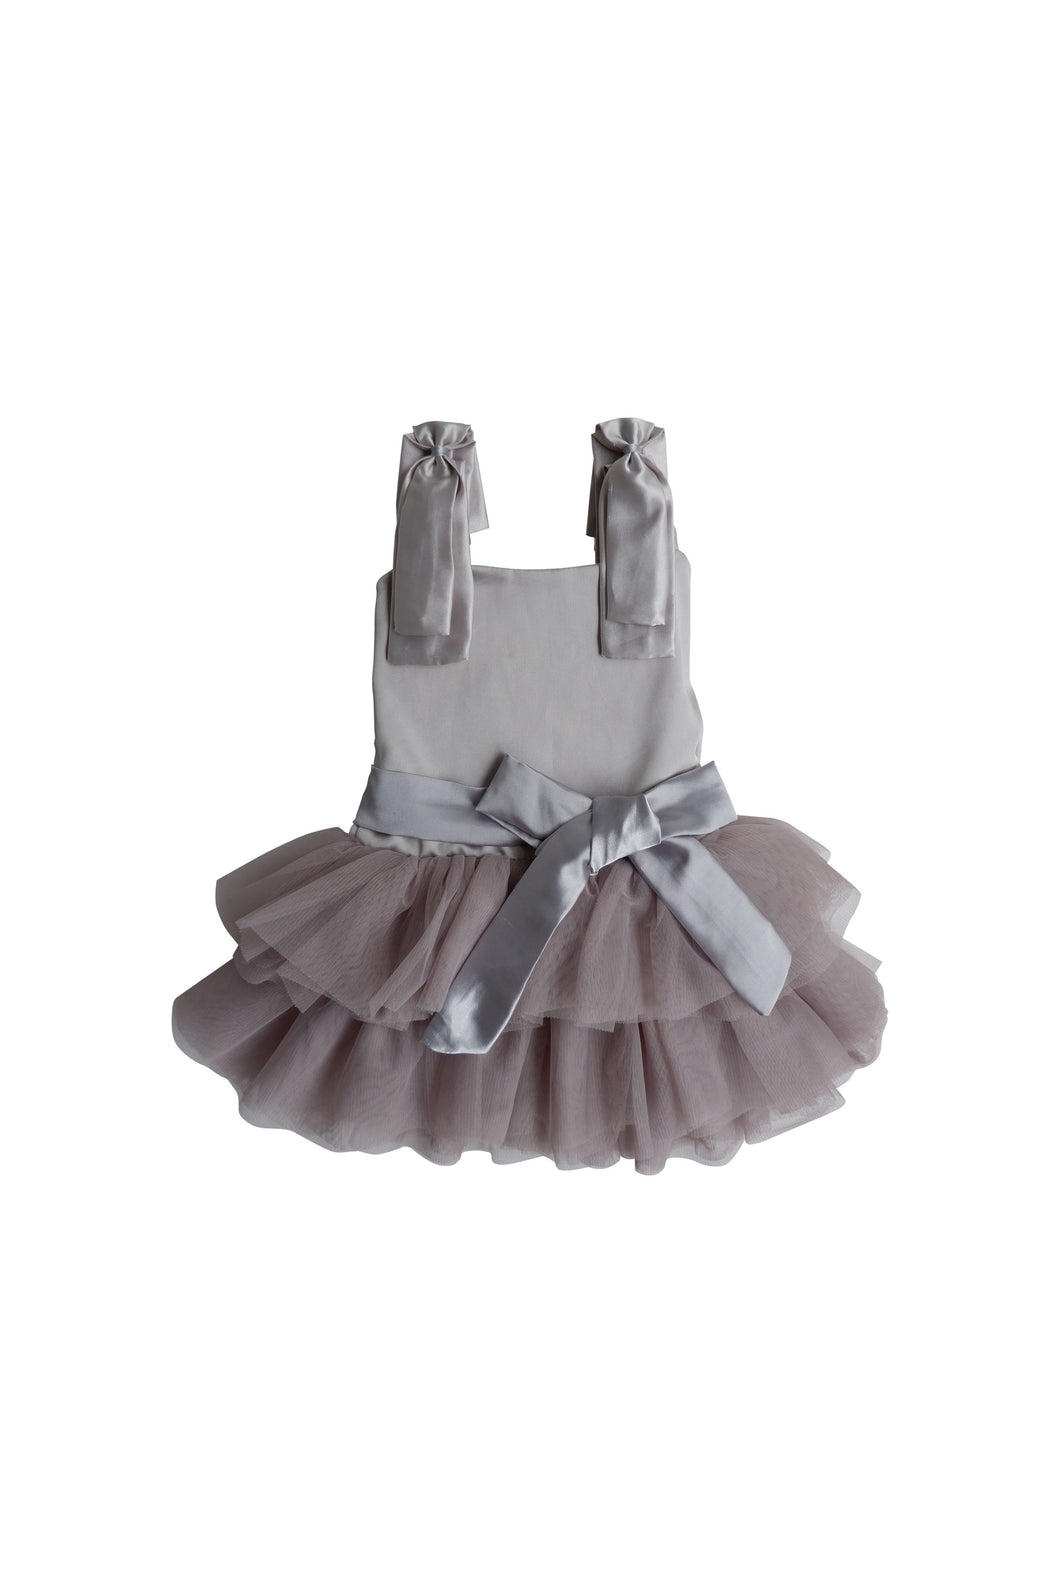 Odette Ballerina Dress - Grey - 2/3 Weeks Delivery